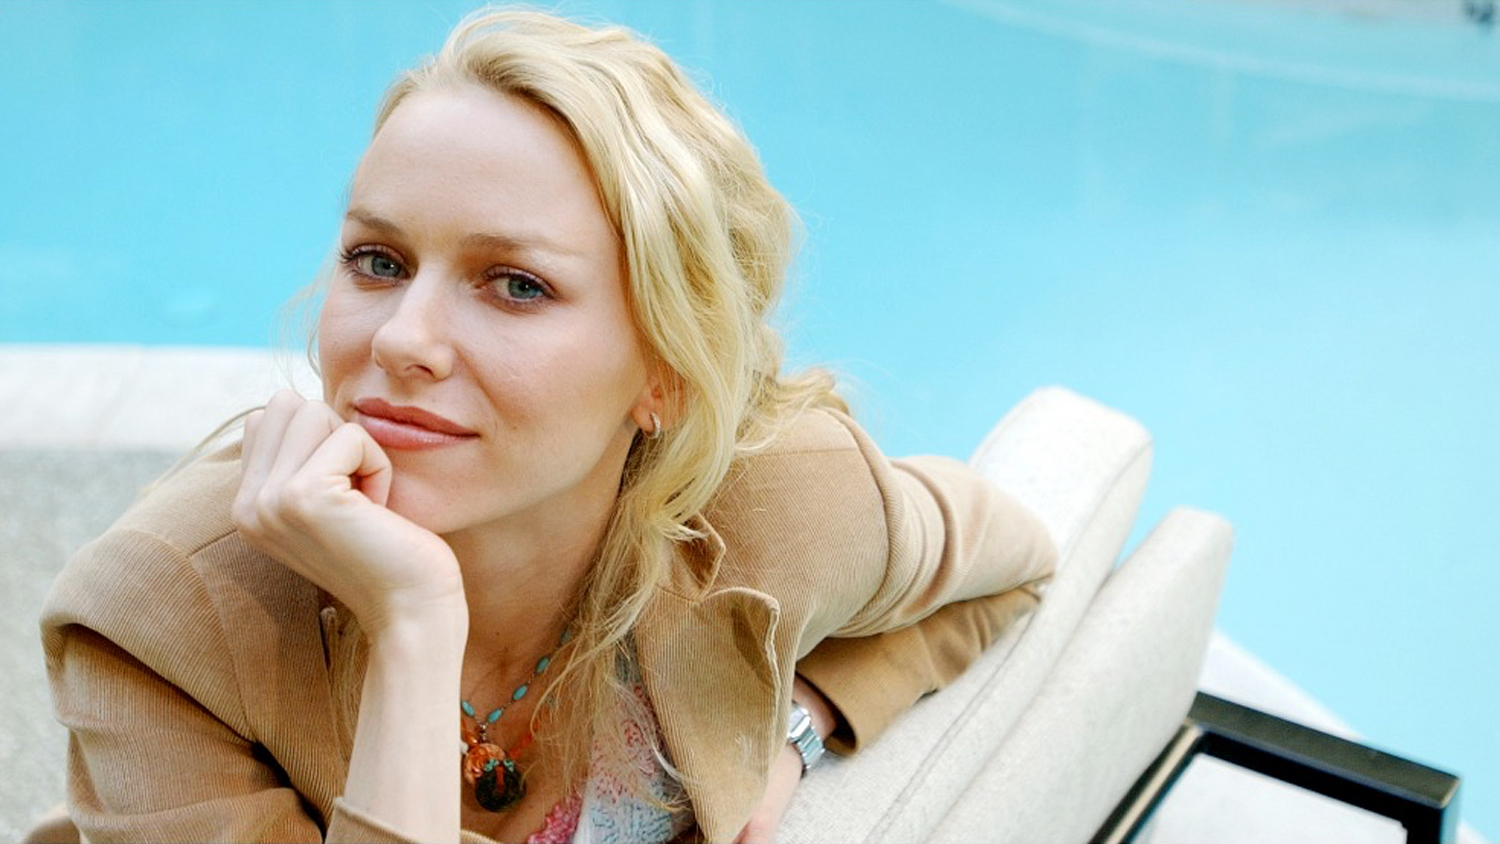 Naomi Watts to Headline Malgorzata Szumowska's 'Infinite Storm' With Bleecker, Sony Pictures Worldwide